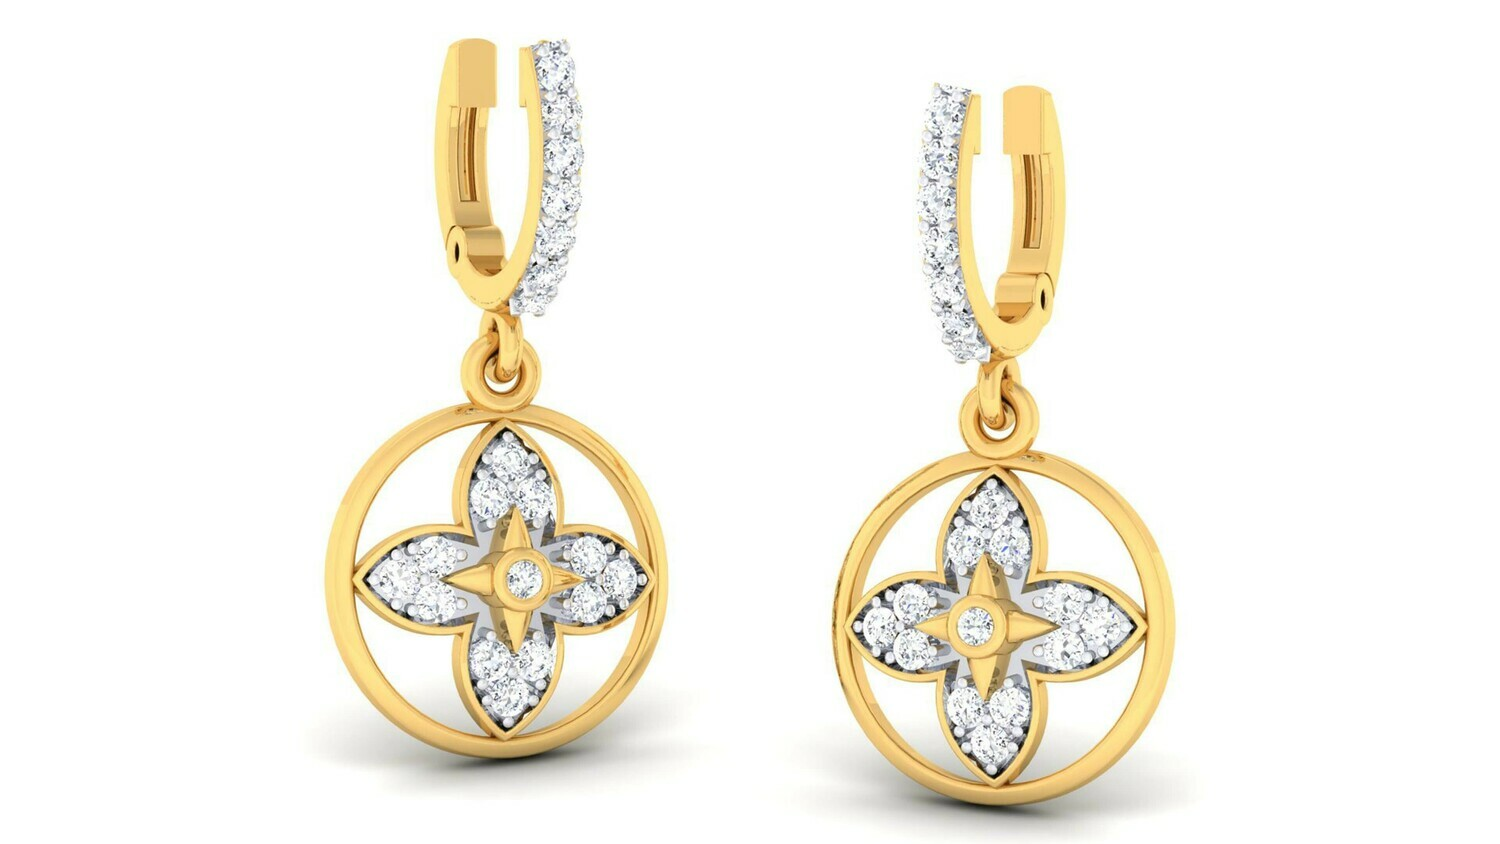 3D CAD jewelry model diamond earrings and pendant